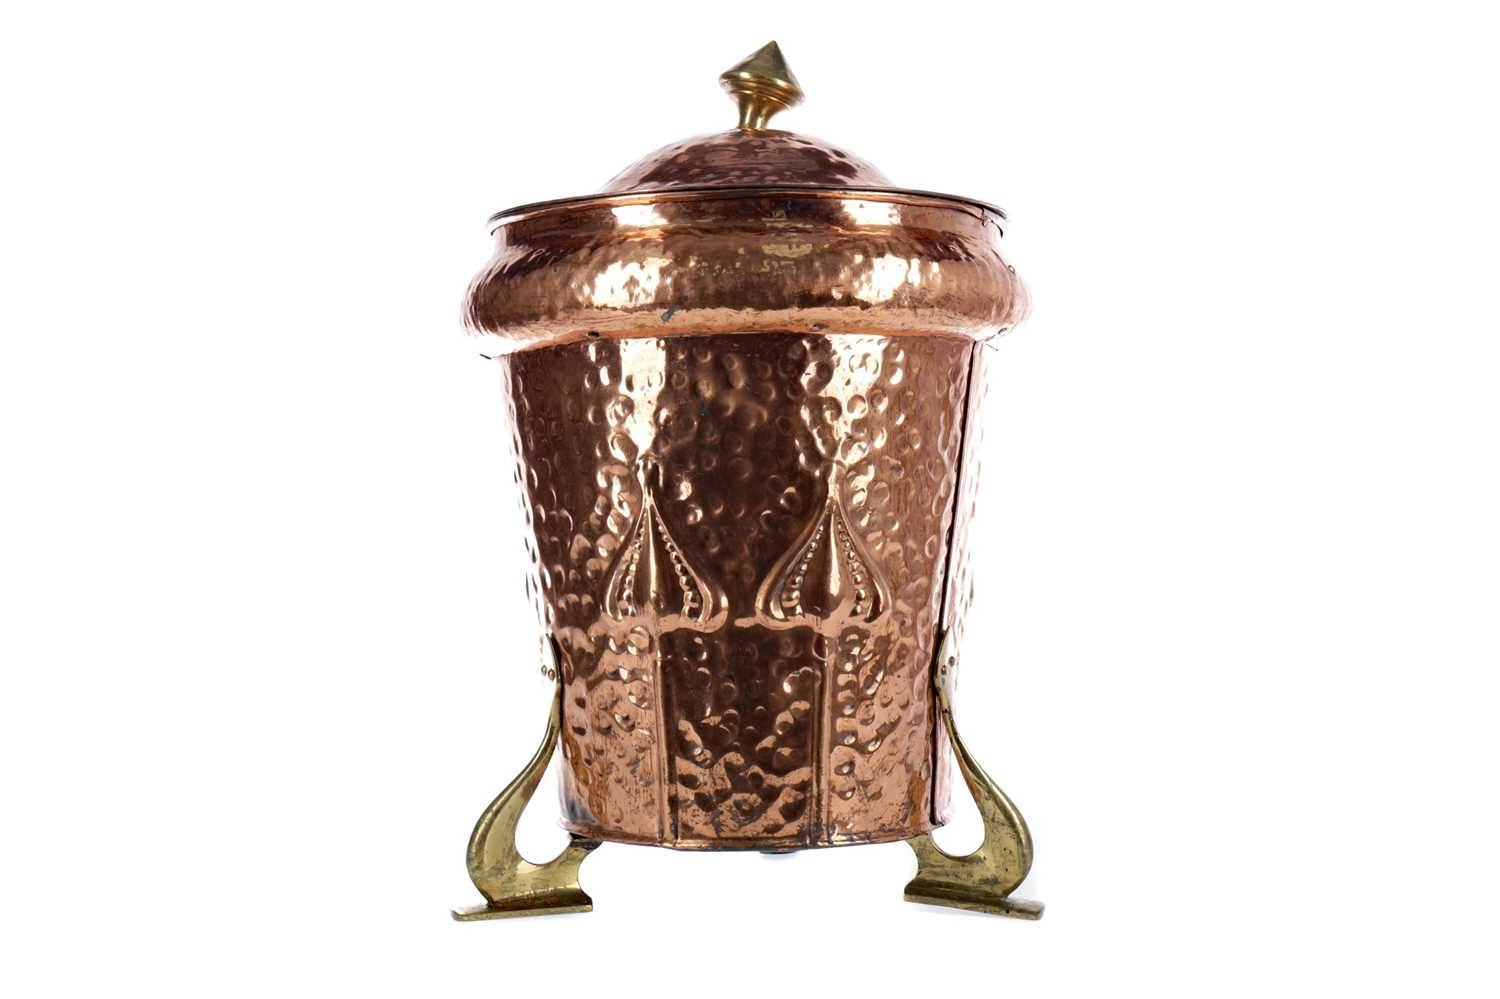 Lot 1330 - AN ARTS & CRAFTS HAMMERED COPPER COAL BIN AND COVER